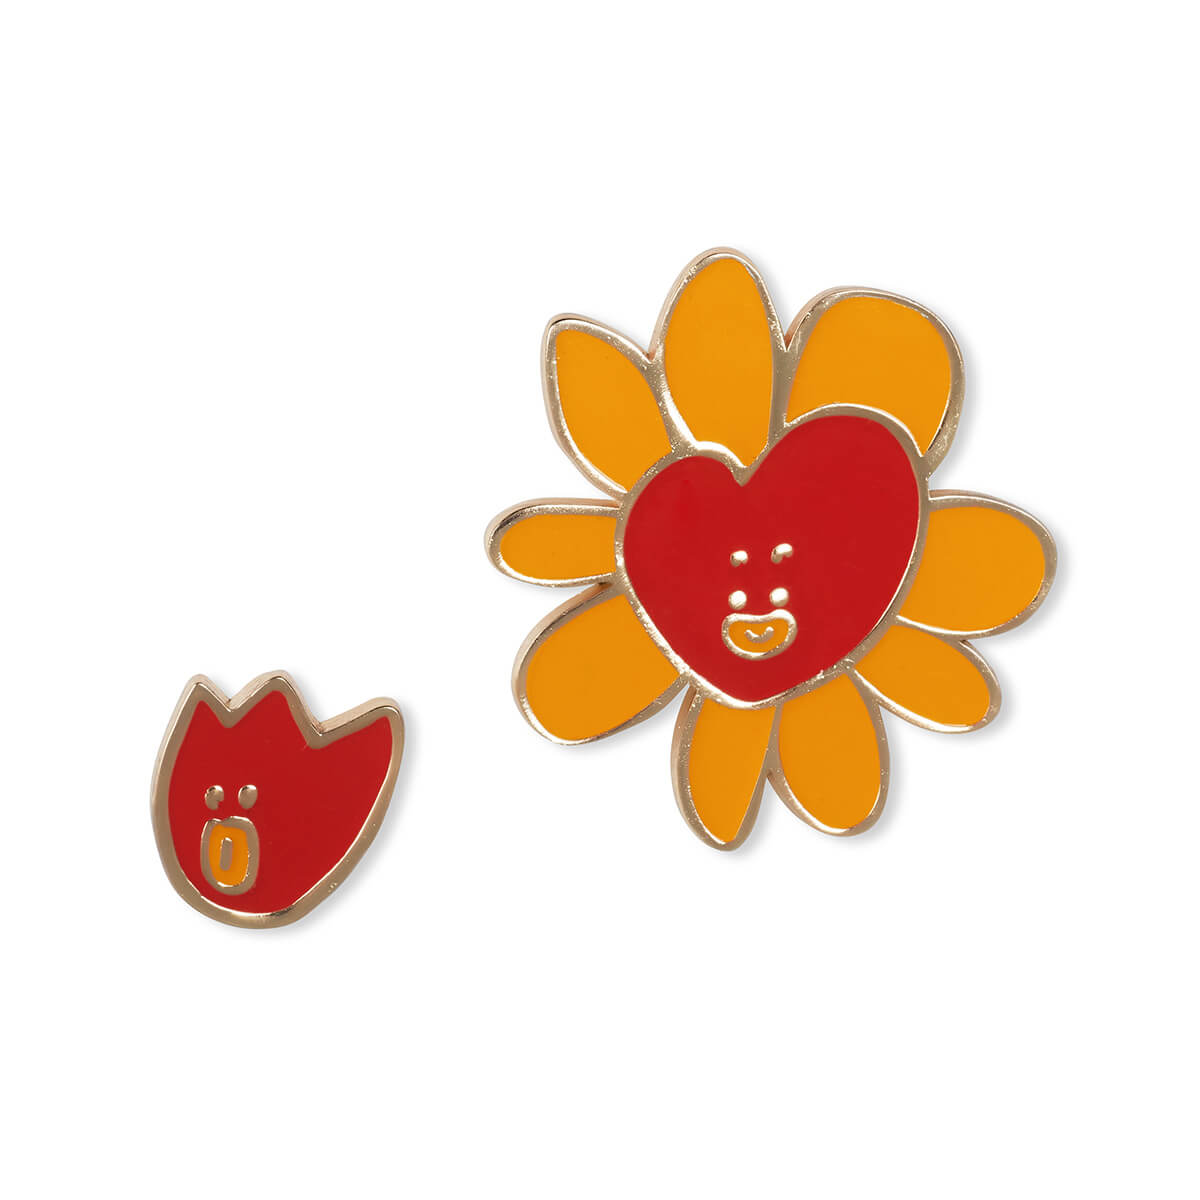 BT21 TATA Flower Enamel Pin 2 Piece Set